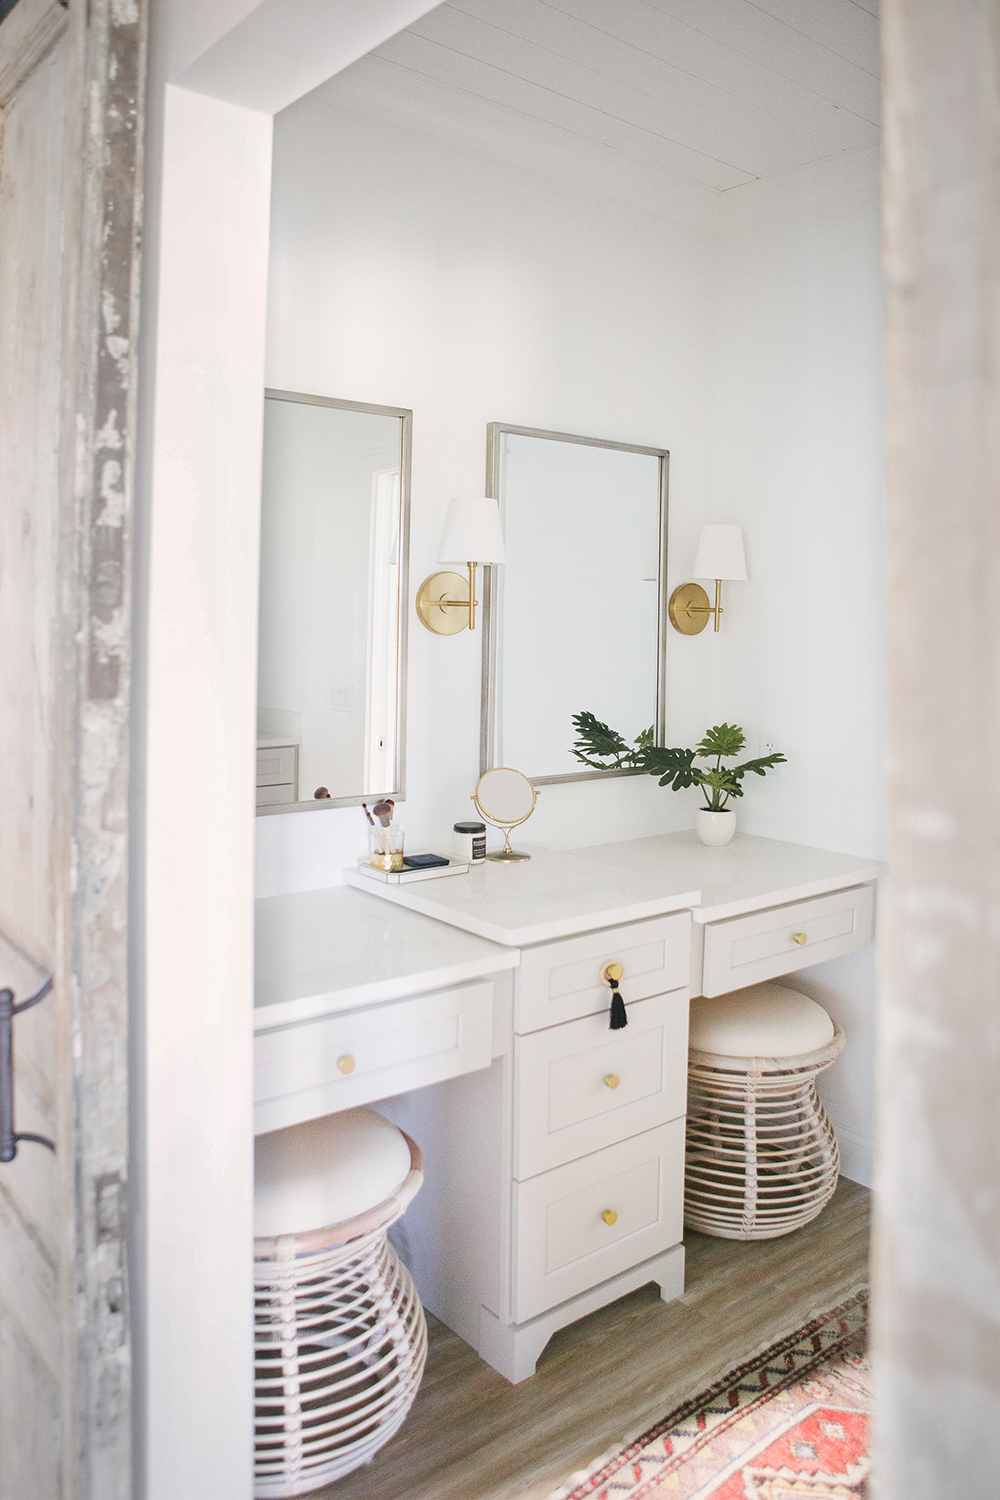 Reader Design Dilemma : Bathroom - roomfortuesday.com